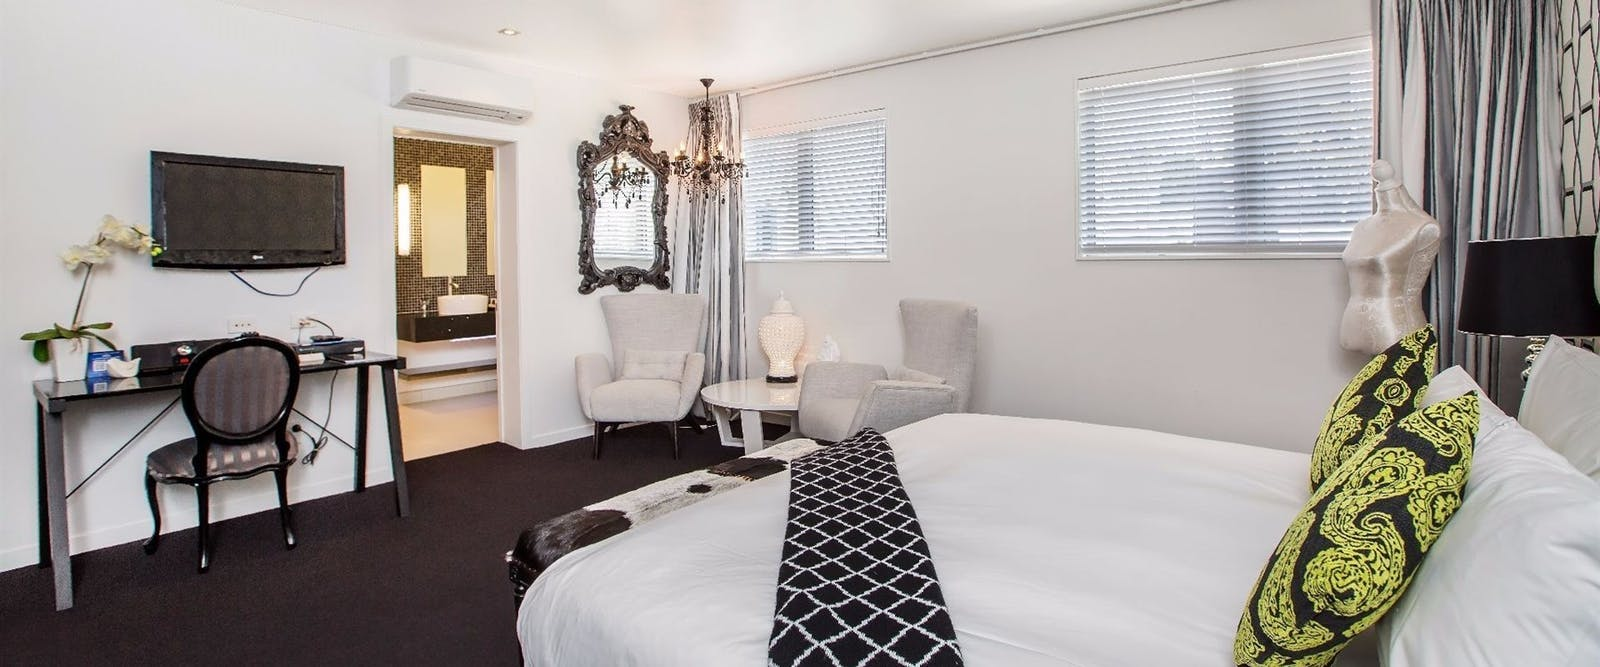 Guest bedroom at Regent of Rotorua